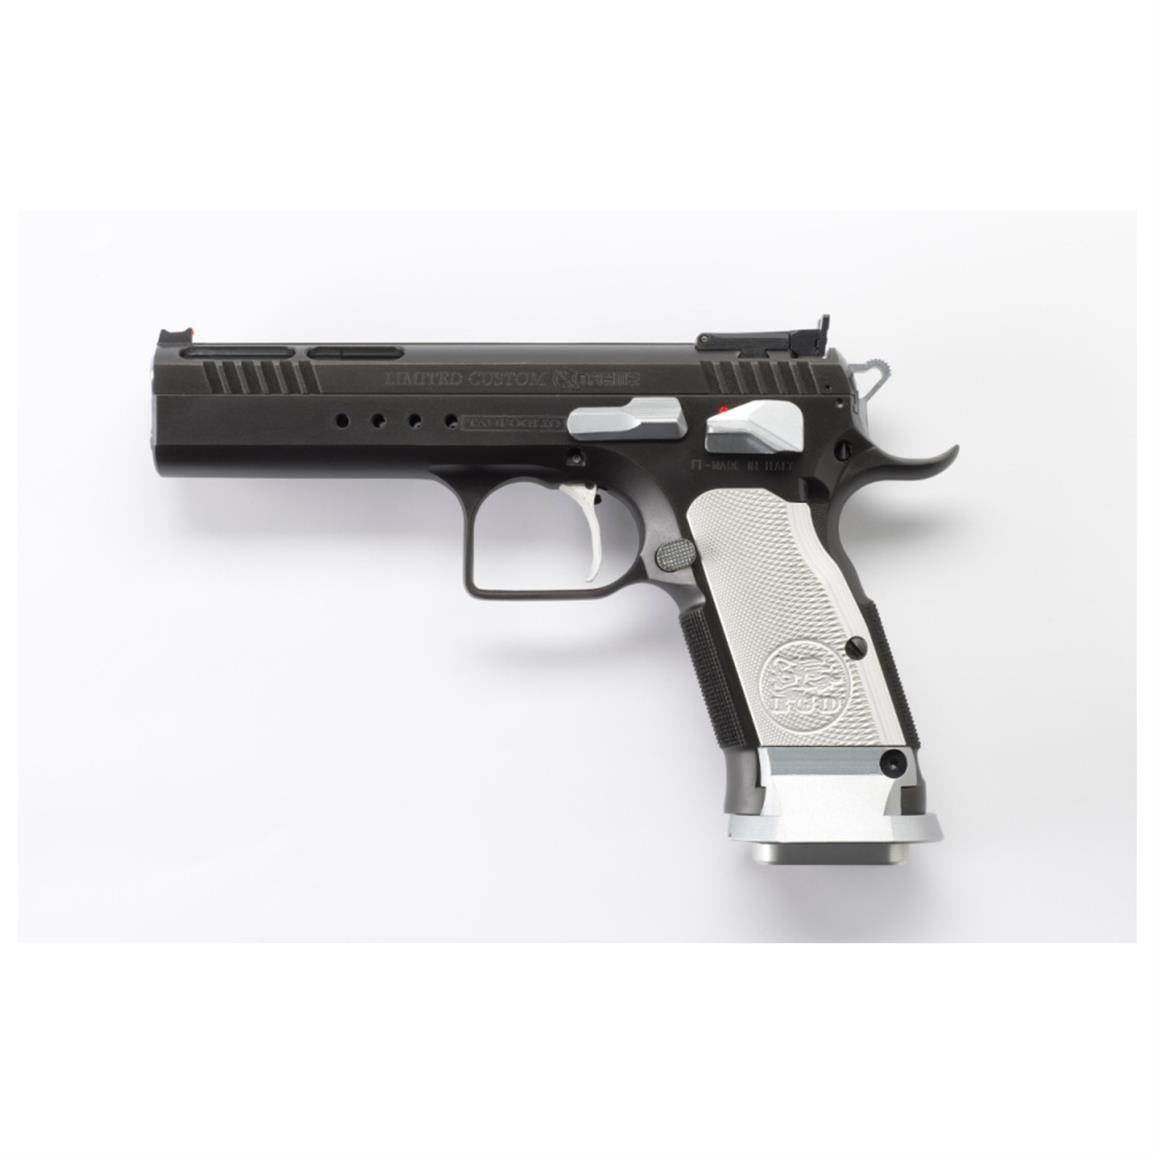 "EAA Tanfoglio Witness Limited Custom Xtreme, Semi-automatic, 9mm, 4.75"" Barrel, 17+1 Rounds"